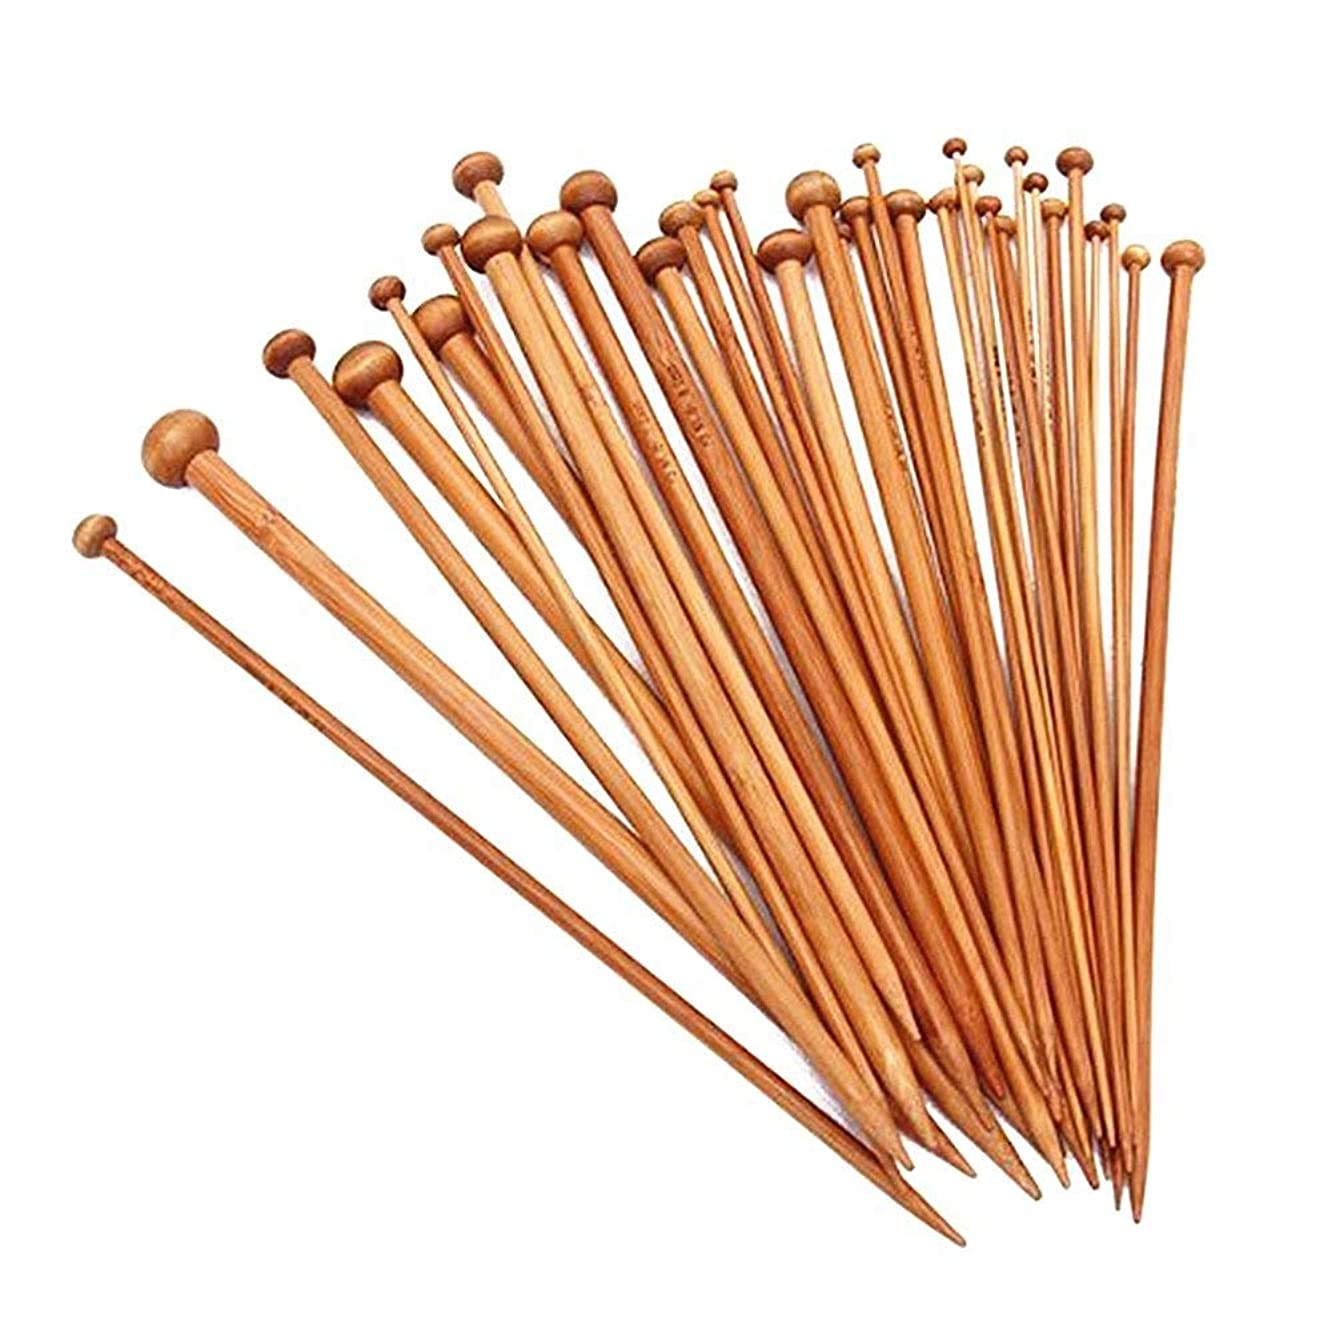 Carbonized Bamboo Knitting Needle Set Single Pointed Sweater Straight Needle Kit in Different Sizes(18pirs,36pcs,9.8 inches Length)